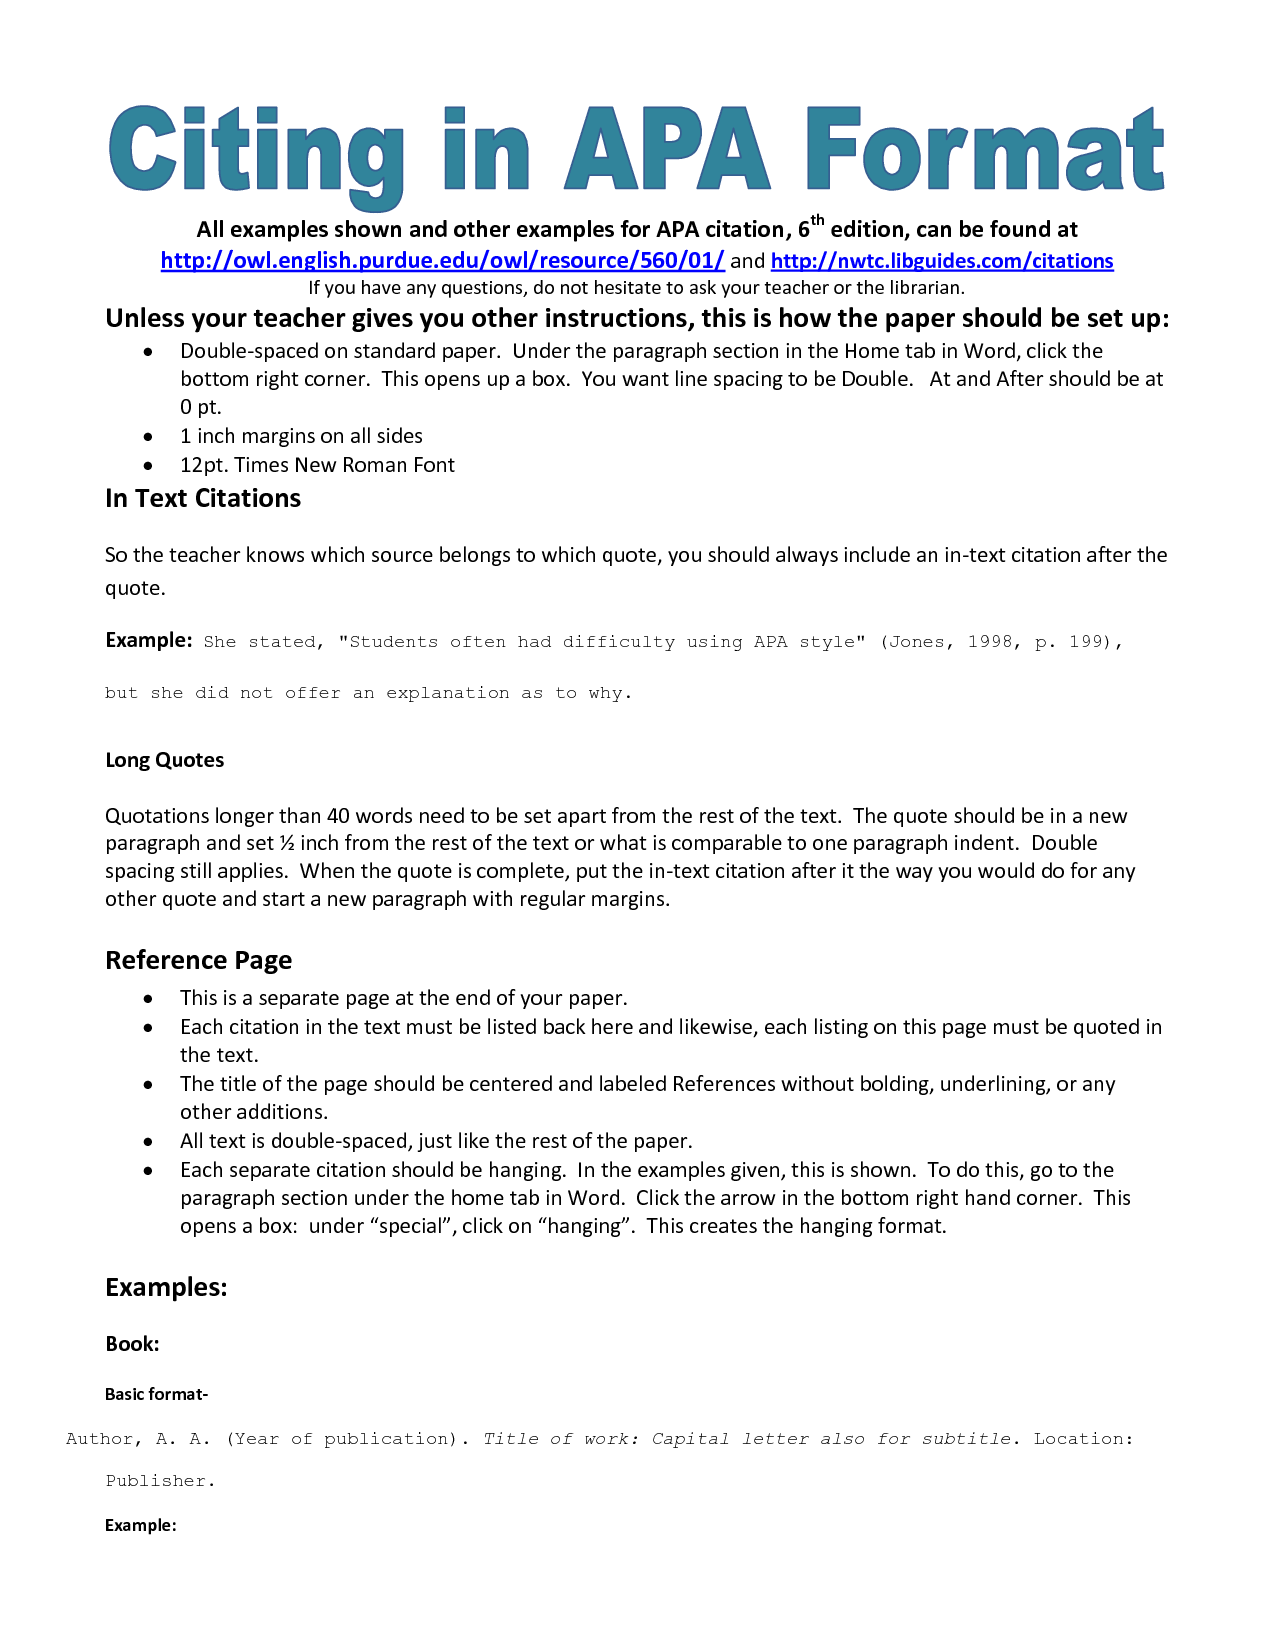 002 Research Paper How To Cite Picture In Archaicawful A Apa Figures Full